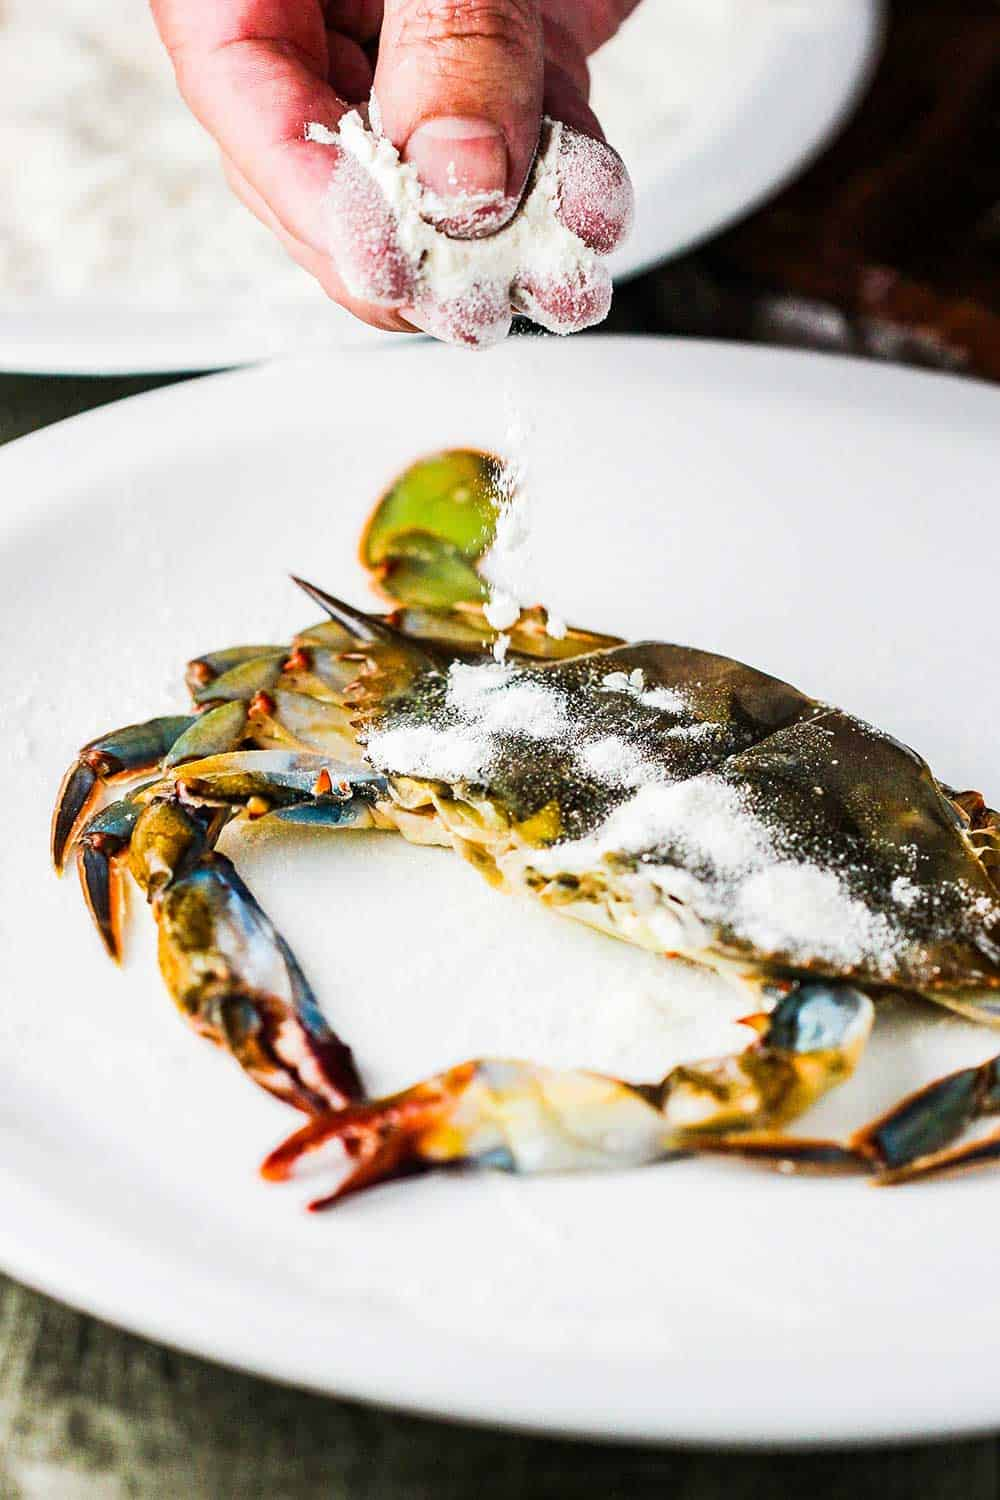 Fingers sprinkling flour over a soft-shell crab.